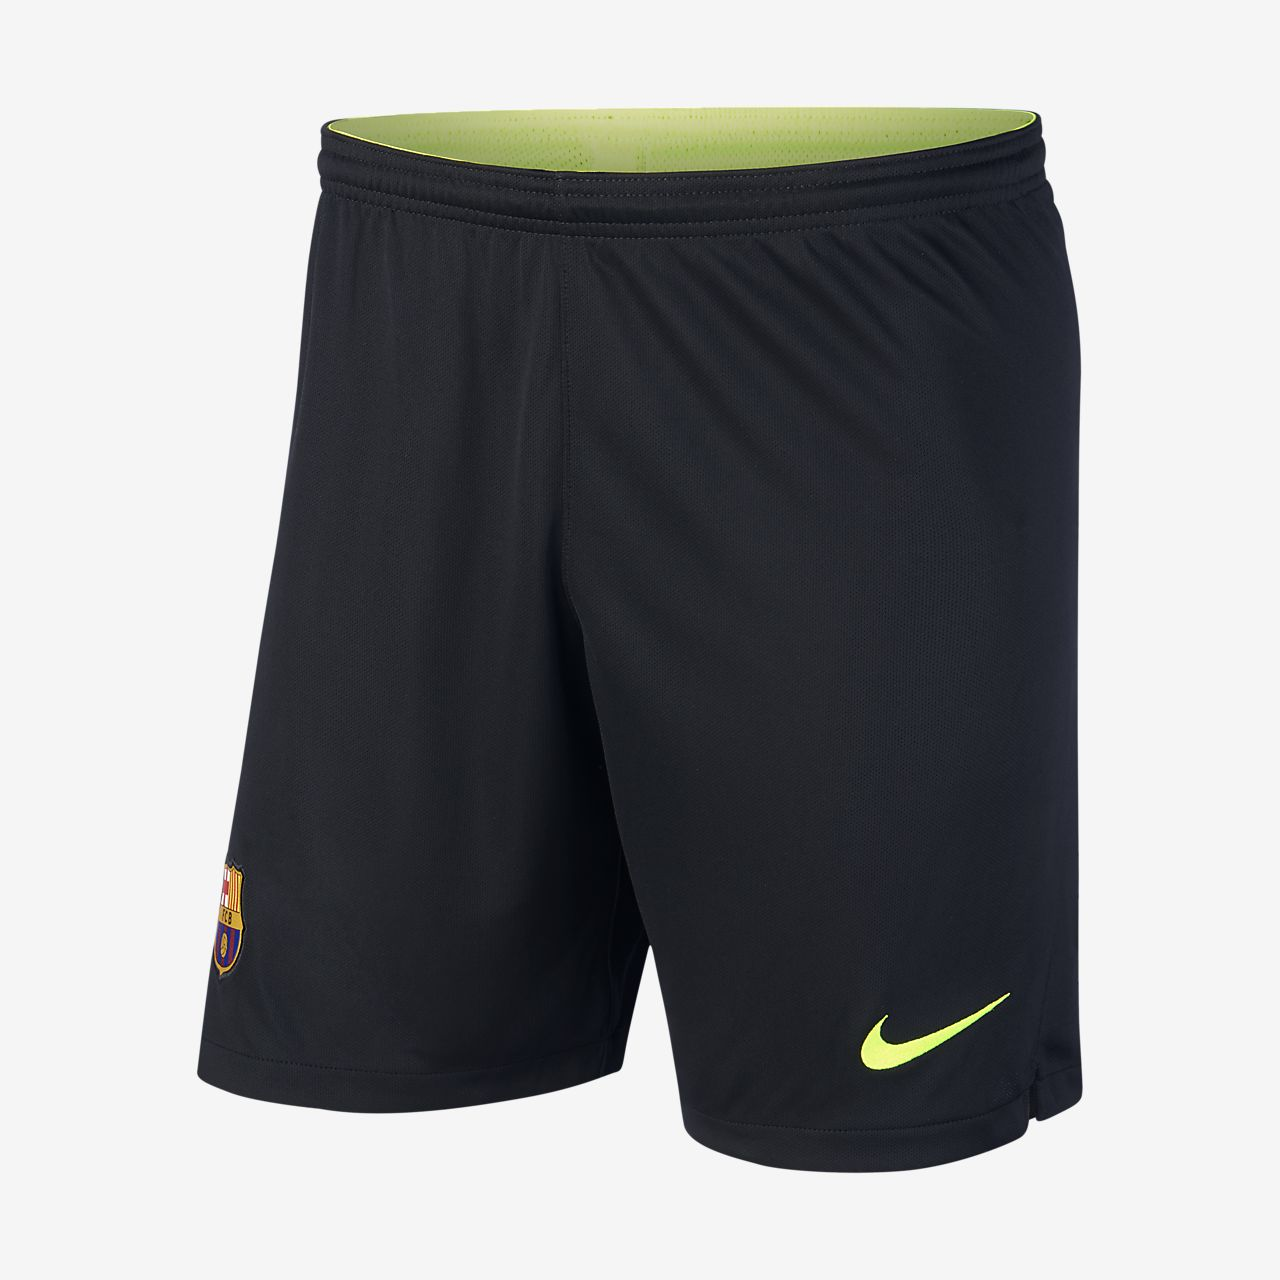 2018/19 FC Barcelona Stadium Goalkeeper Men's Football Shorts